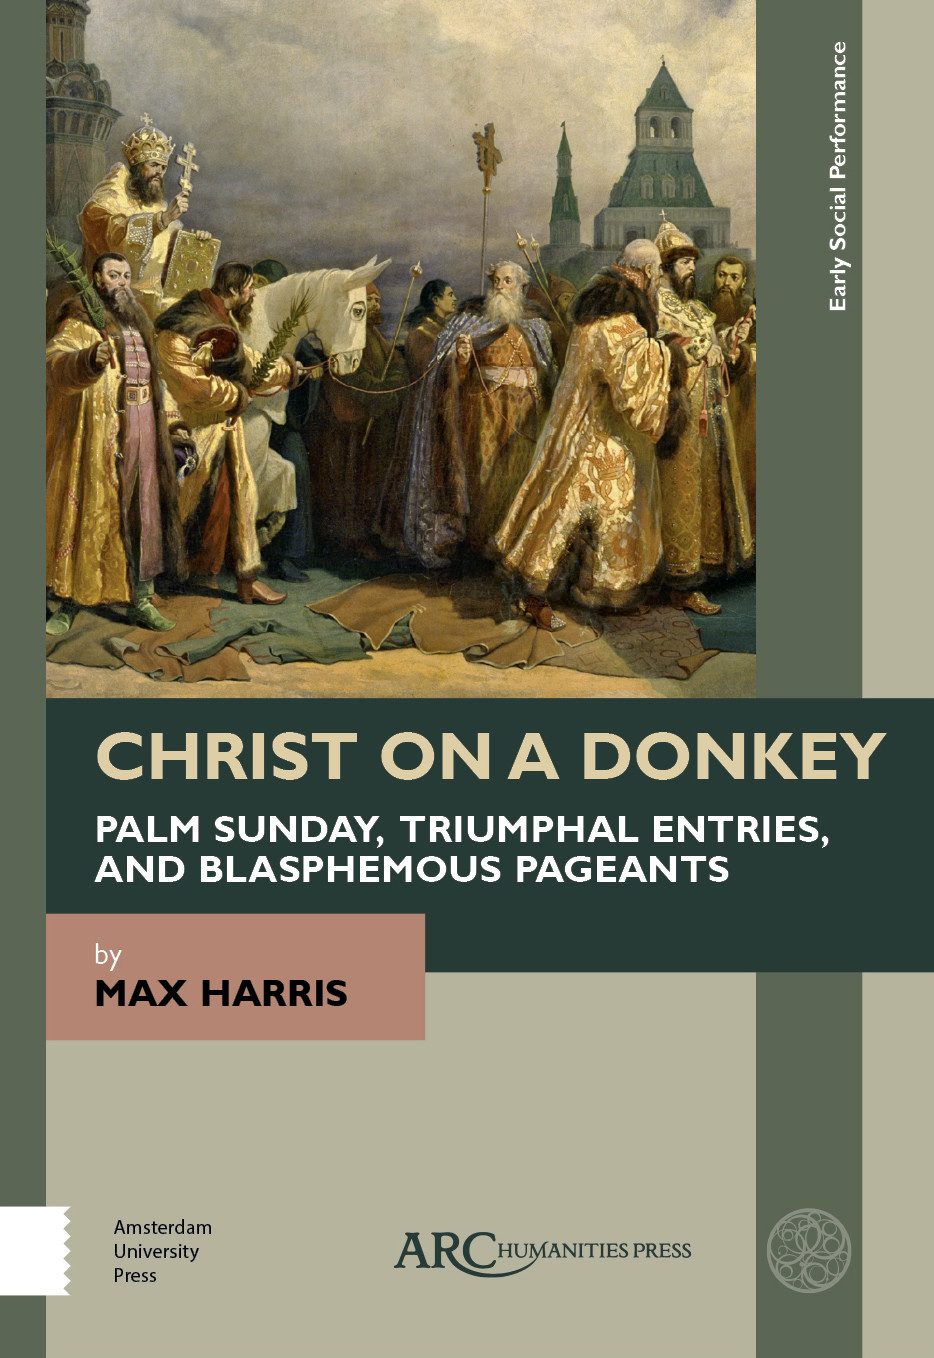 "Cover image of book ""Christ on a Donkey"" depicting a painting of a palm sunday procession in Moscow with men in robes holding palms, a white robed donkey, and a patriarch holding a cross atop the donkey."